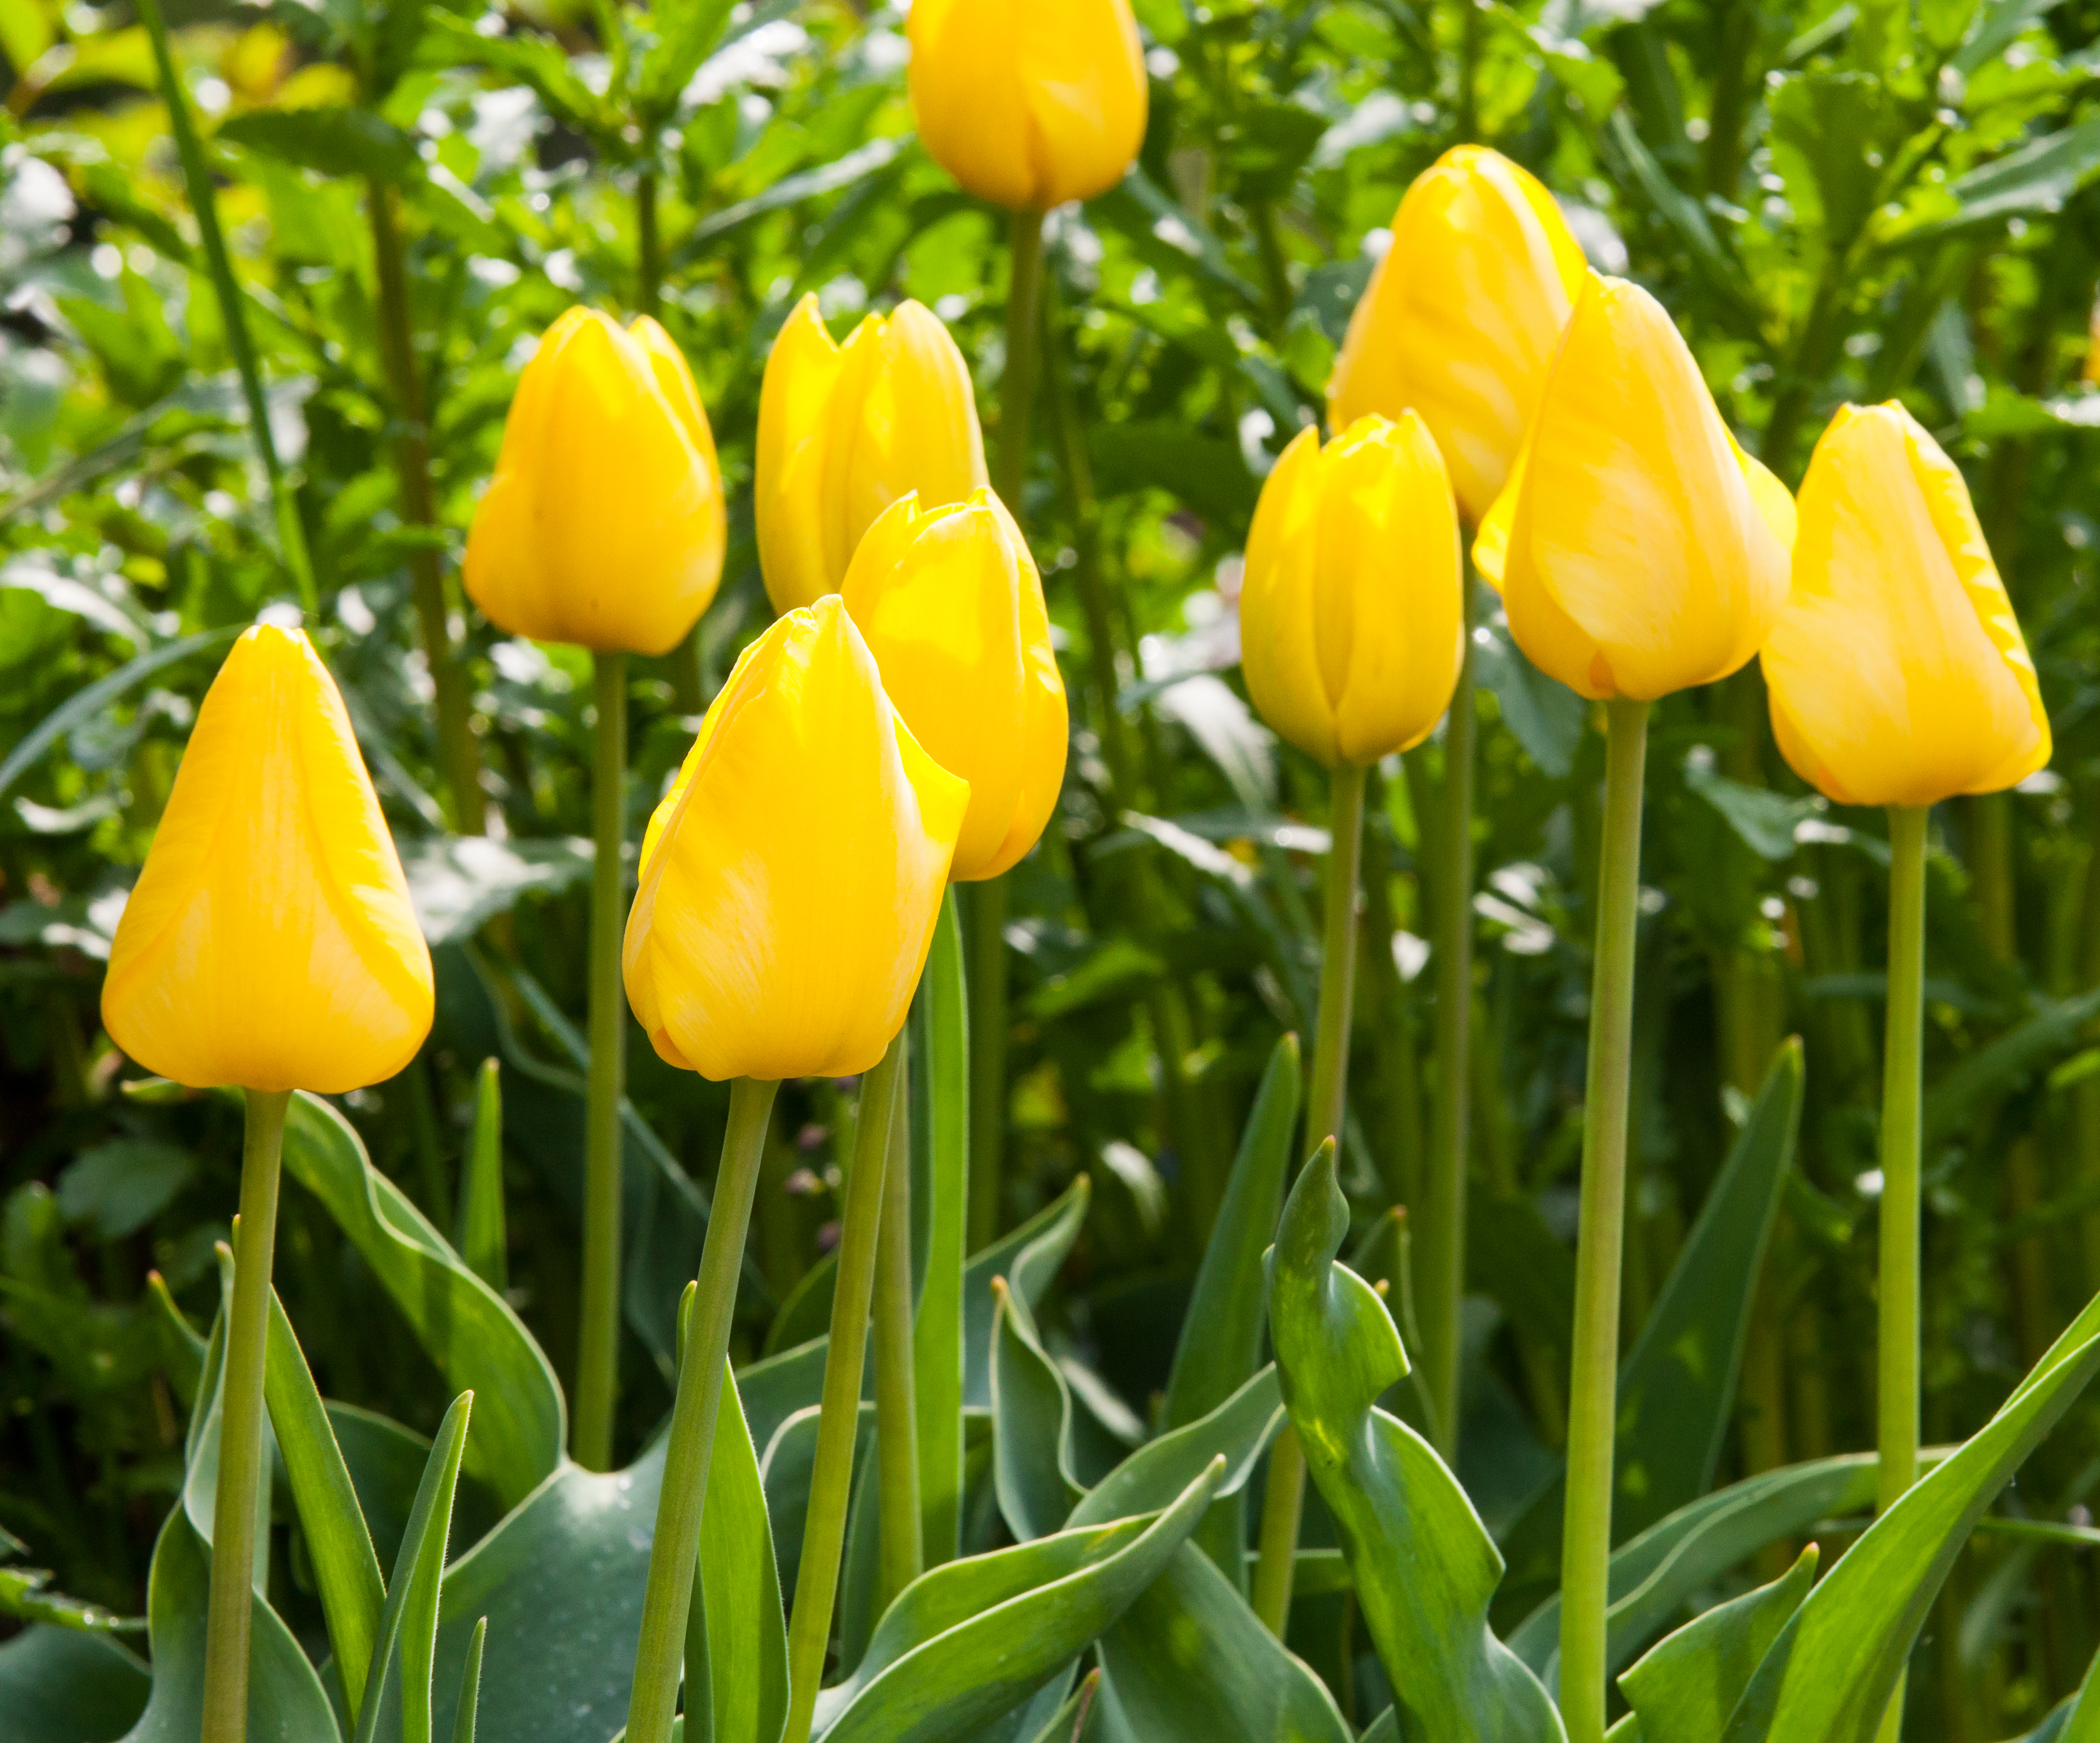 yellow tulips photographed in May 2014